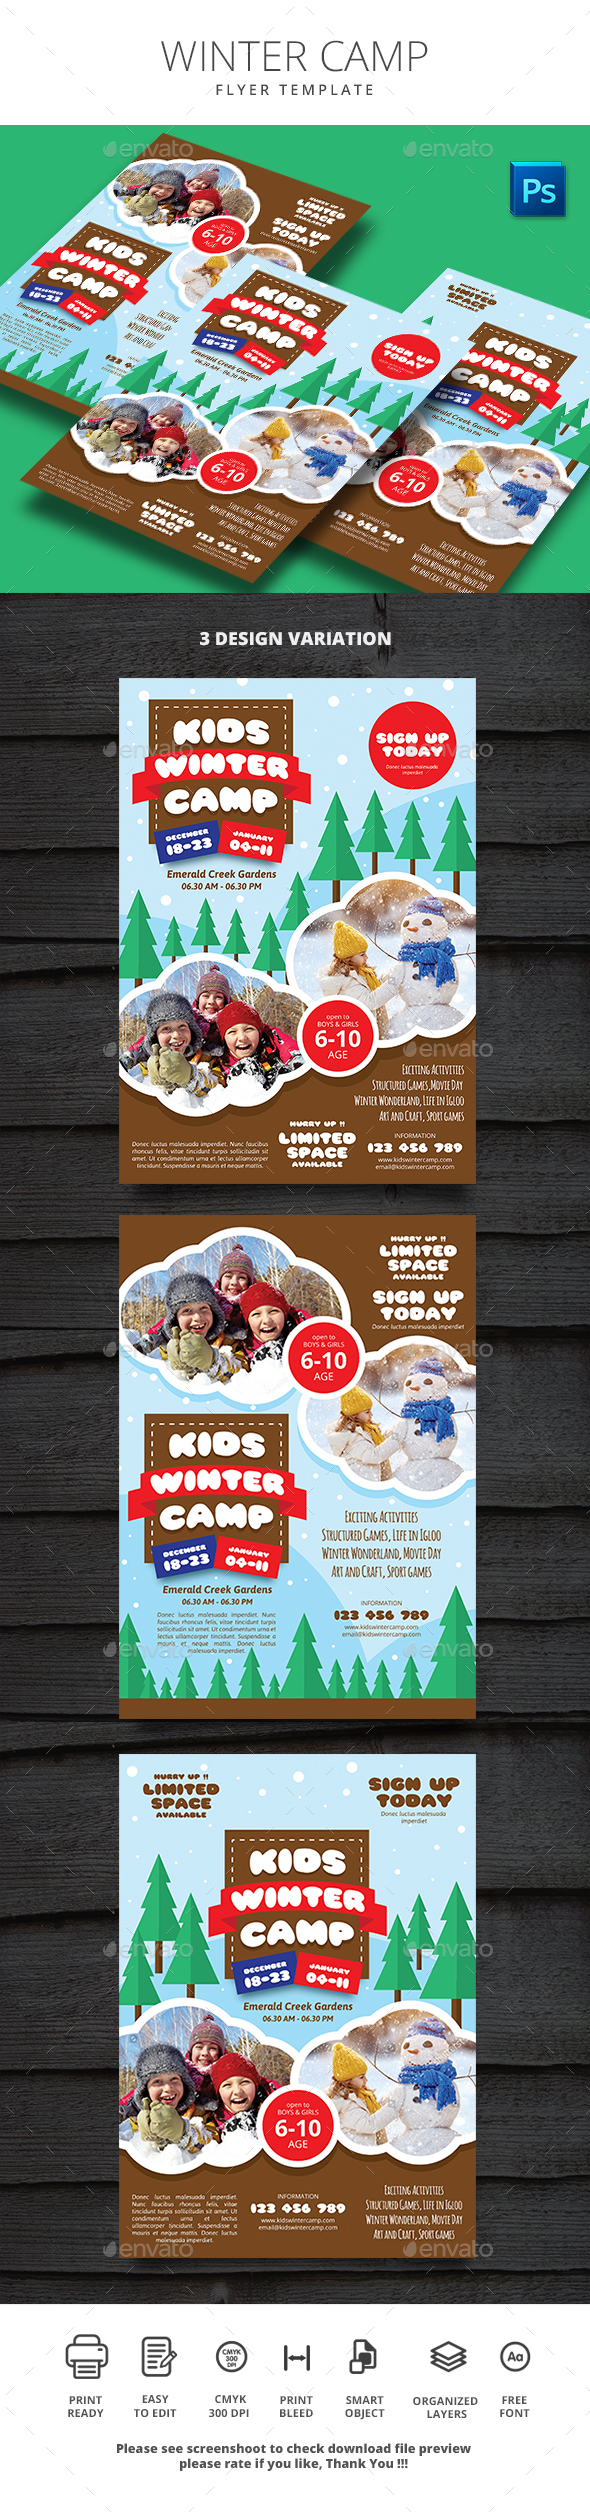 Winter Camp - Sports Events